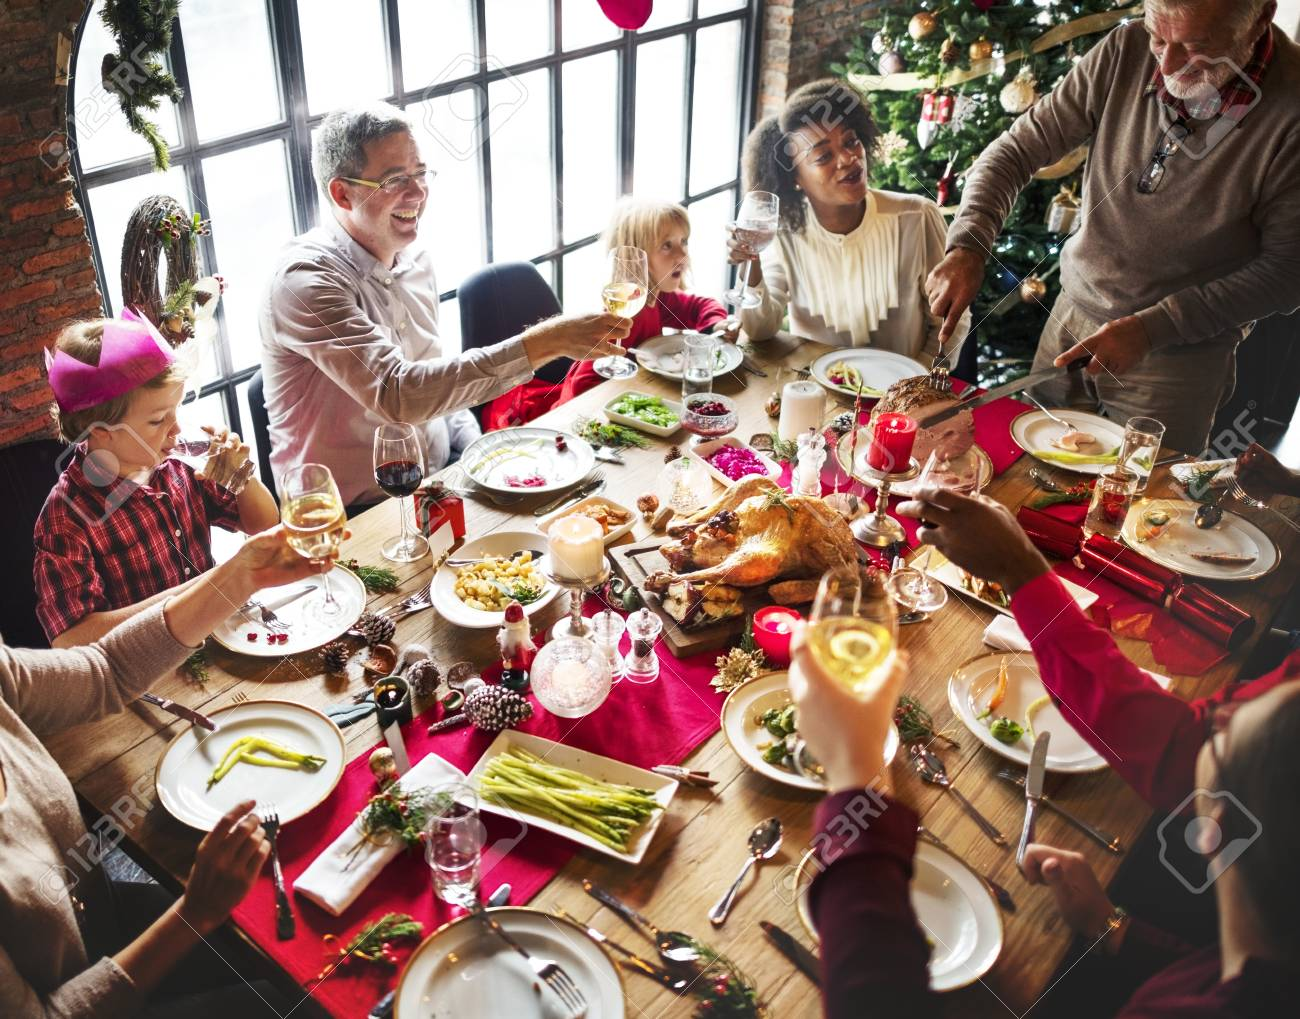 Group of diverse people are gathering for christmas holiday - 89602906